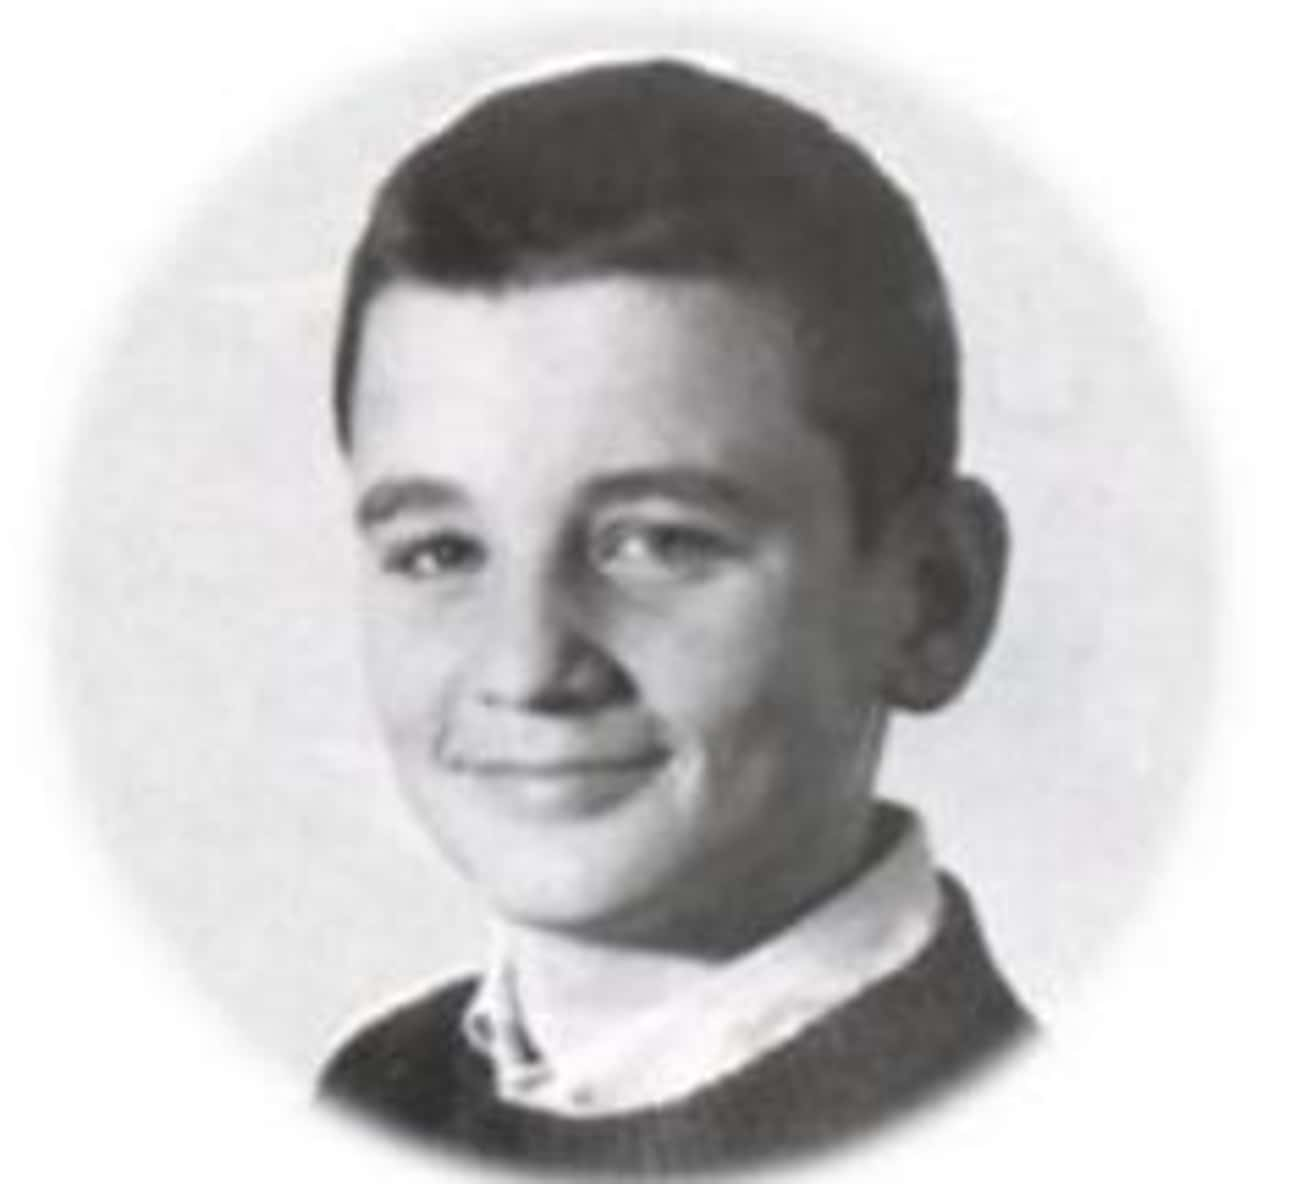 Young Bill Murray as a Kid is listed (or ranked) 1 on the list 12 Pictures of Young Bill Murray